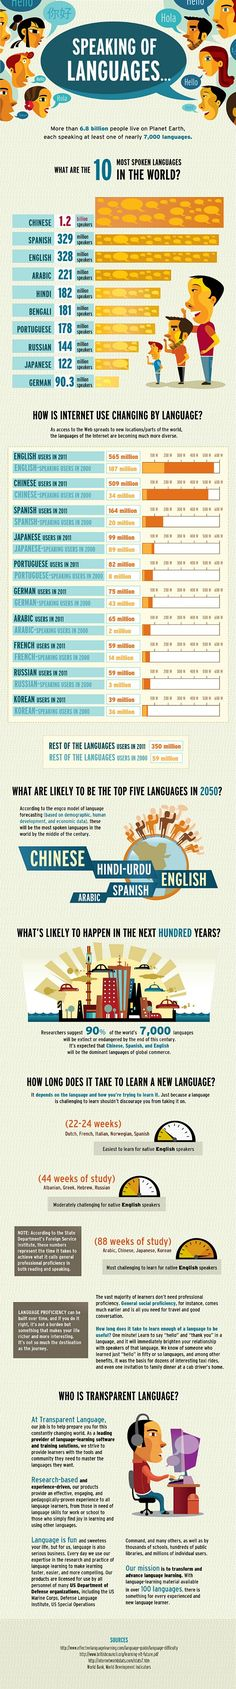 Fascinating infographic about languages. I want this for my classroom and show students the importance of learning new languages and hopefully remind them of their role as global citizens in the future.